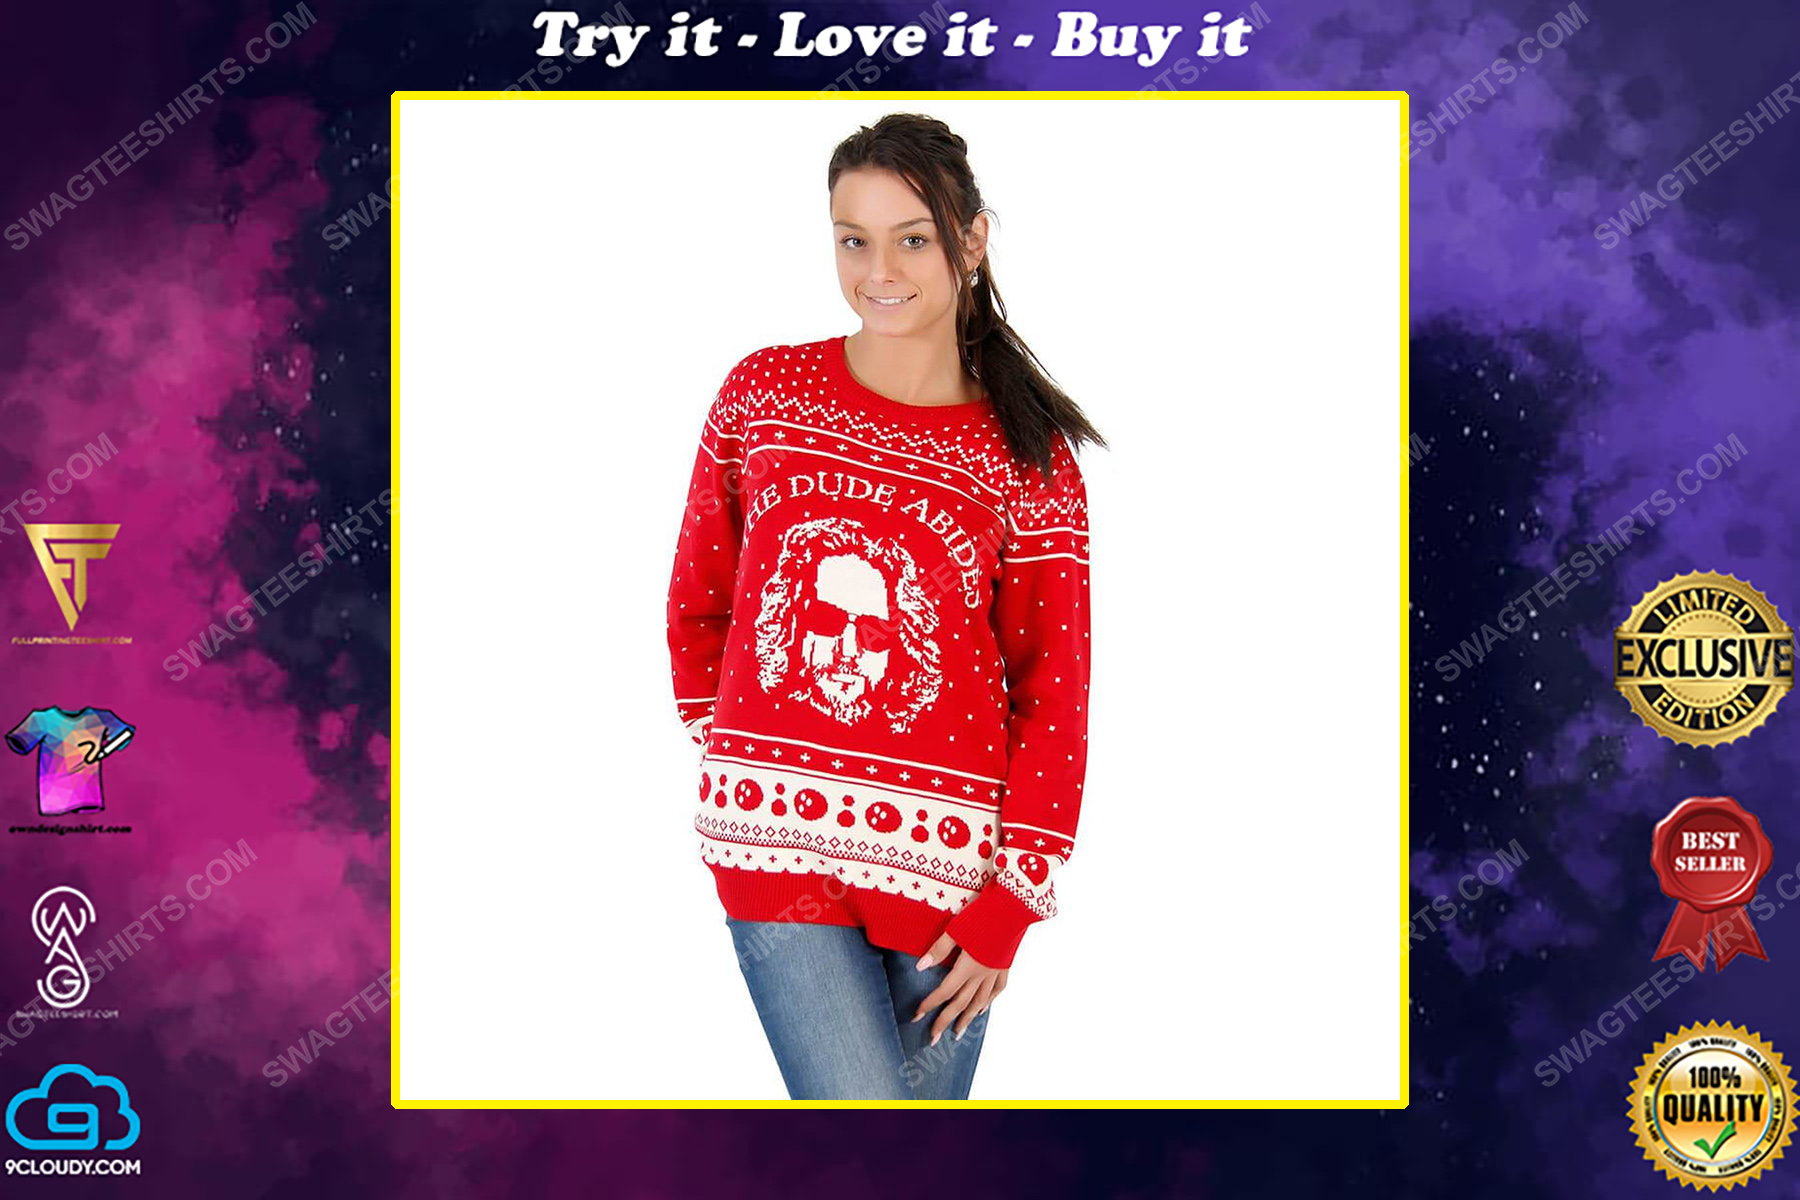 The big lebowski the dude abides full print ugly christmas sweater